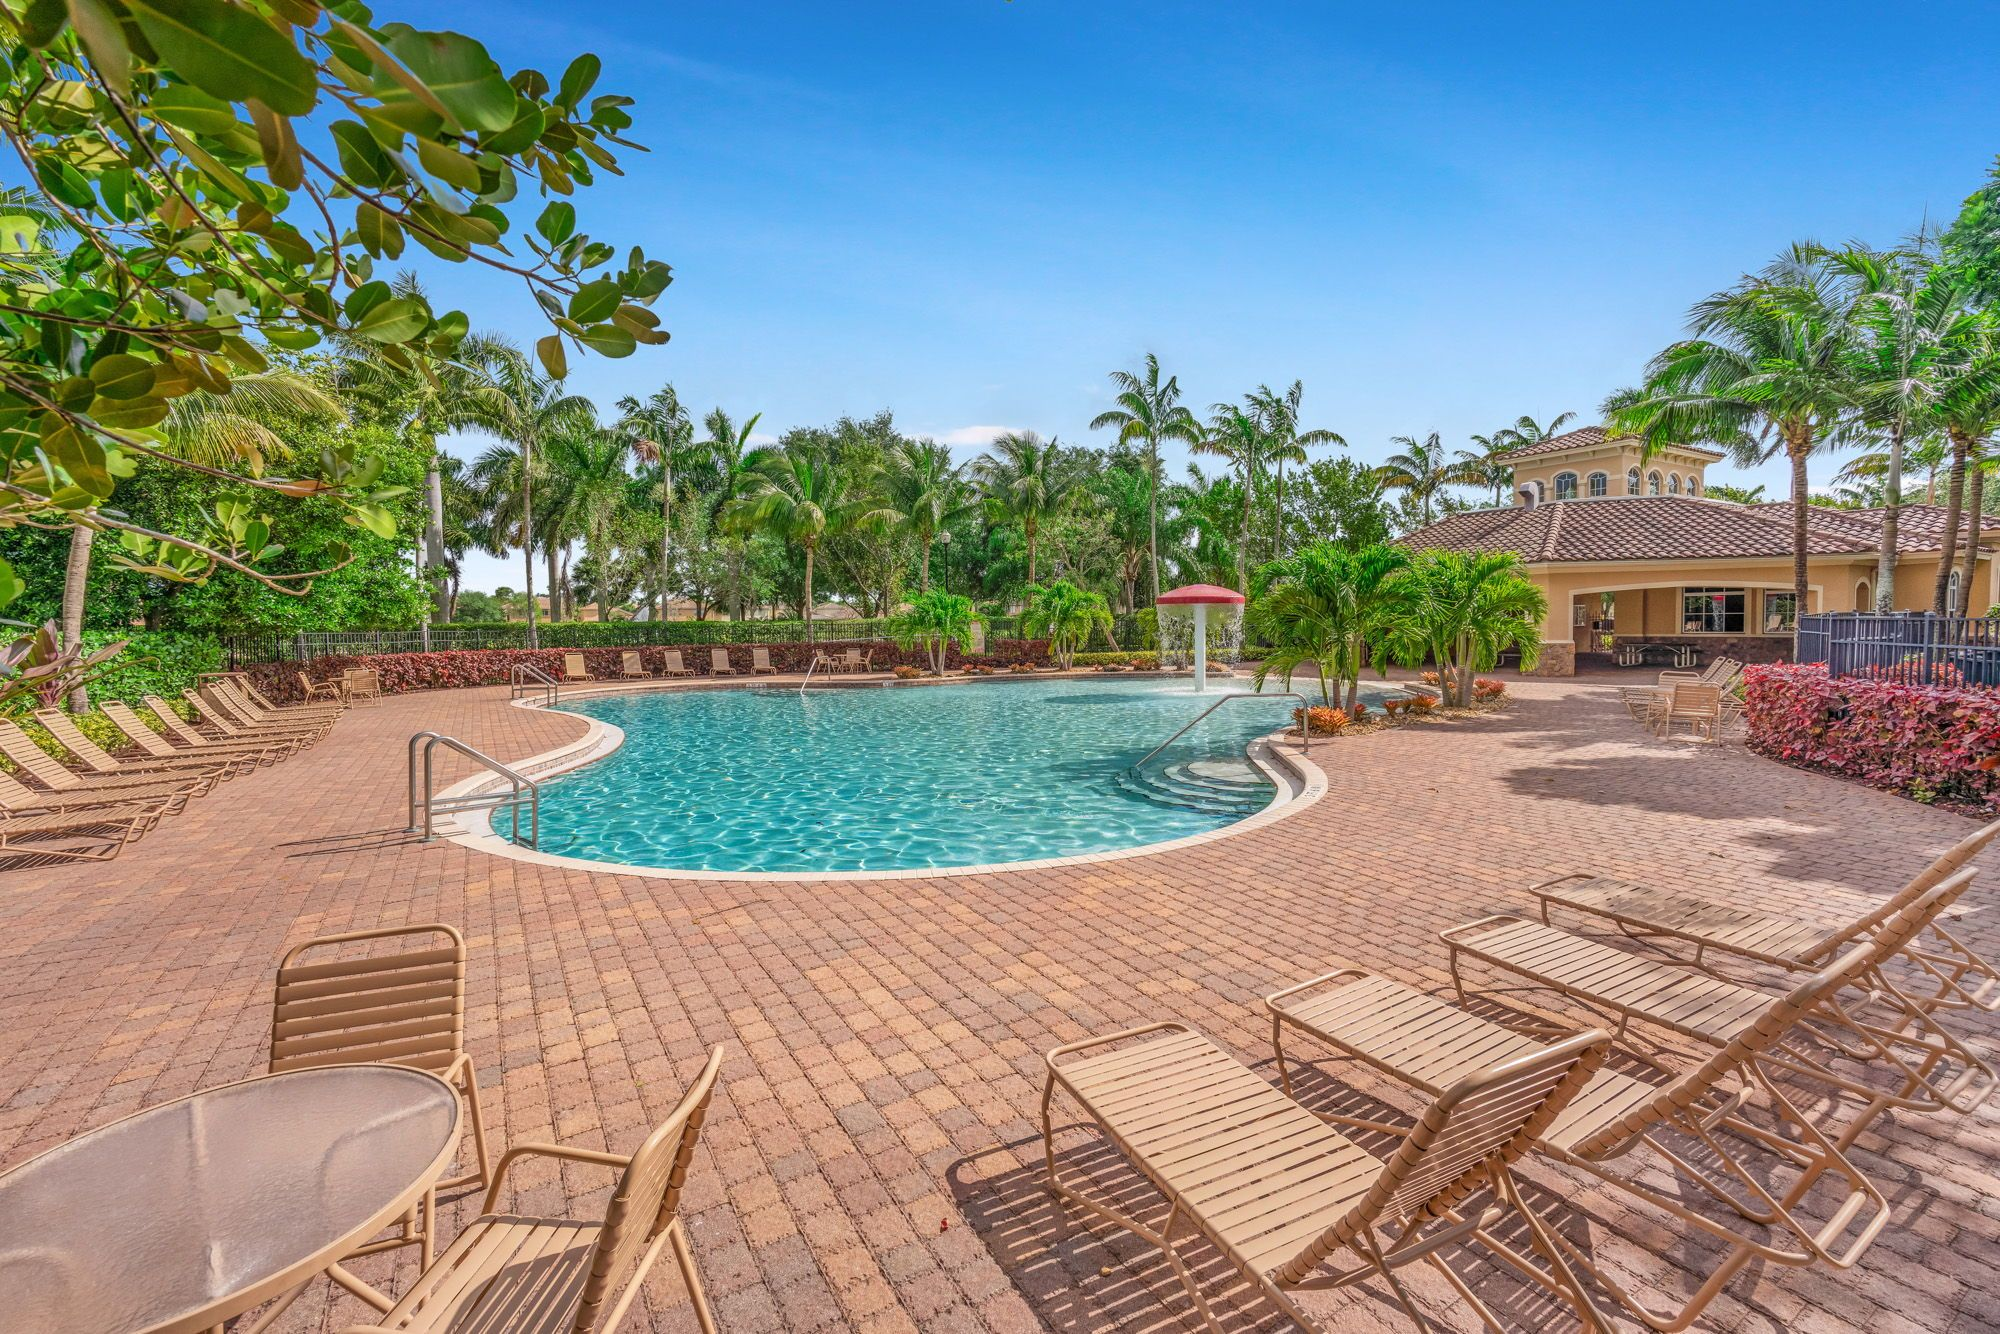 Stunning 2014 Construction Custom Built 3br 2ba Den Open Concept Home With A Contemporary Feel Surrounded By A Lush Green Oversized Yard West Palm Beach